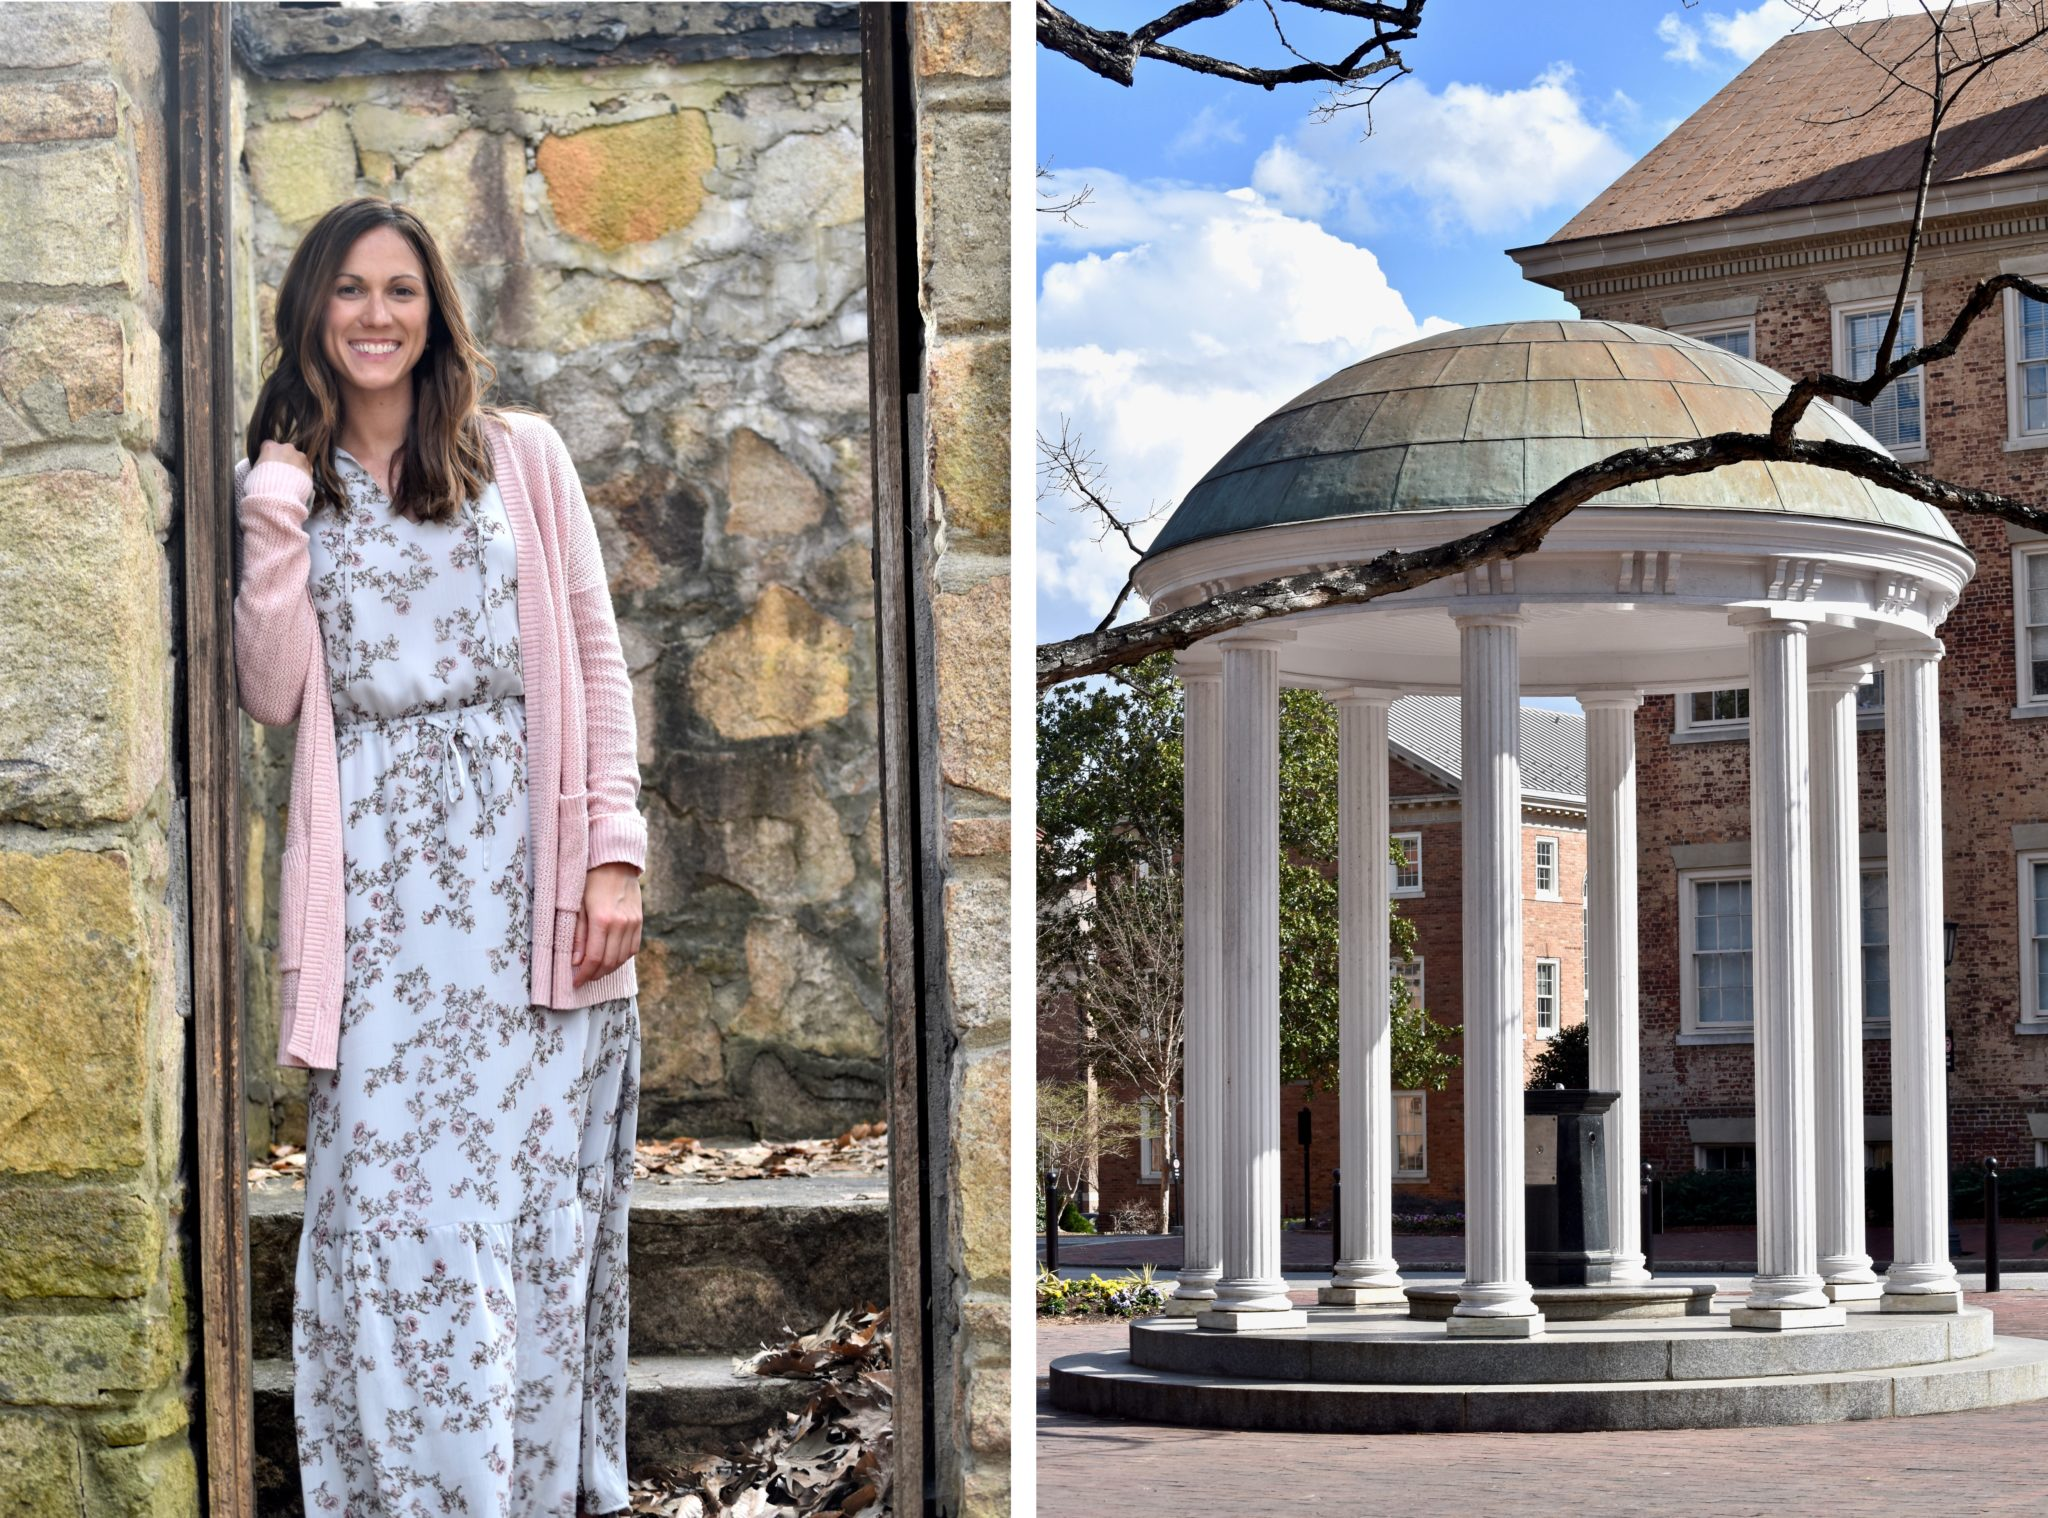 24 hours in chapel hill & fearrington village // cait's plate